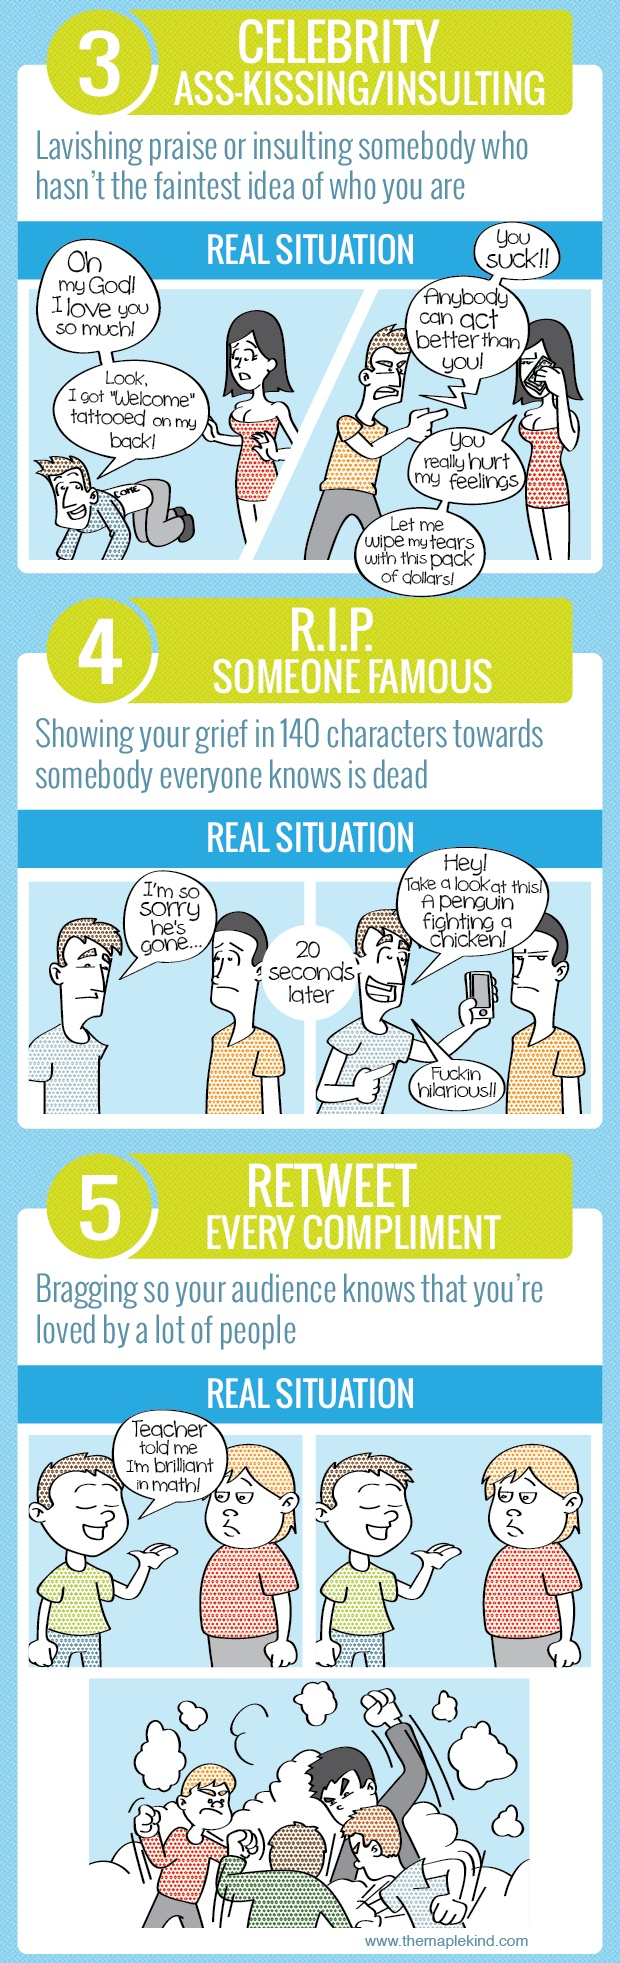 10 twitter mistakes in the real world (part 2)